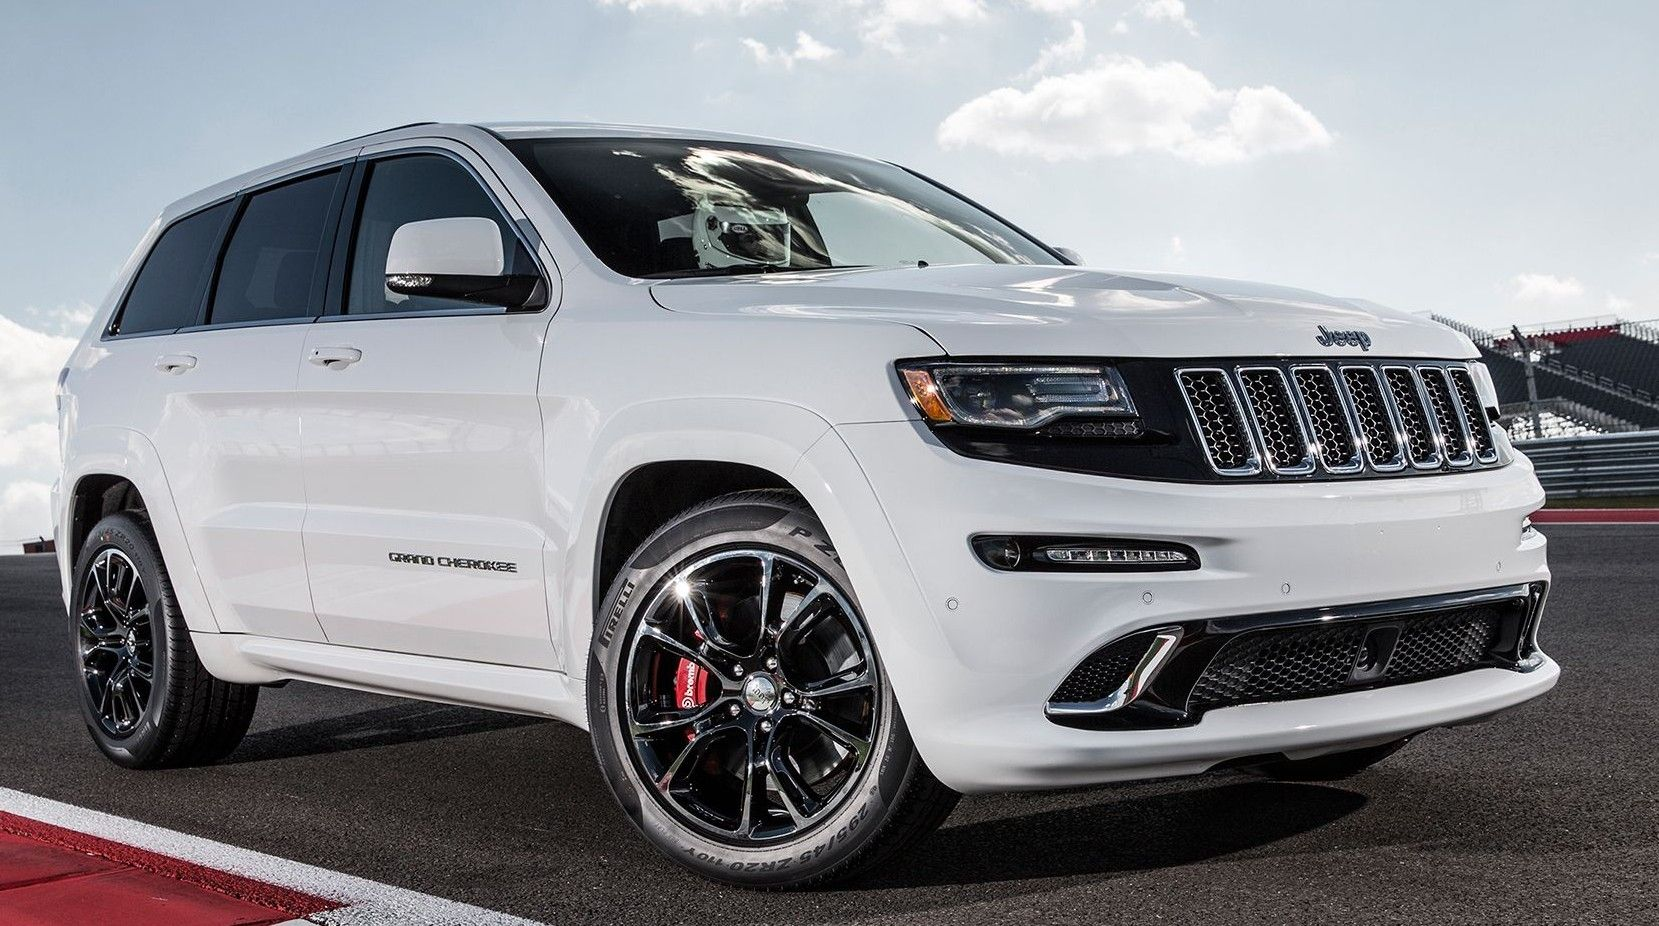 Hellcat Engine To Be Used In 2017 Jeep Cherokee Trackhawk Jeep Grand Cherokee Srt Jeep Grand Cherokee Jeep Srt8